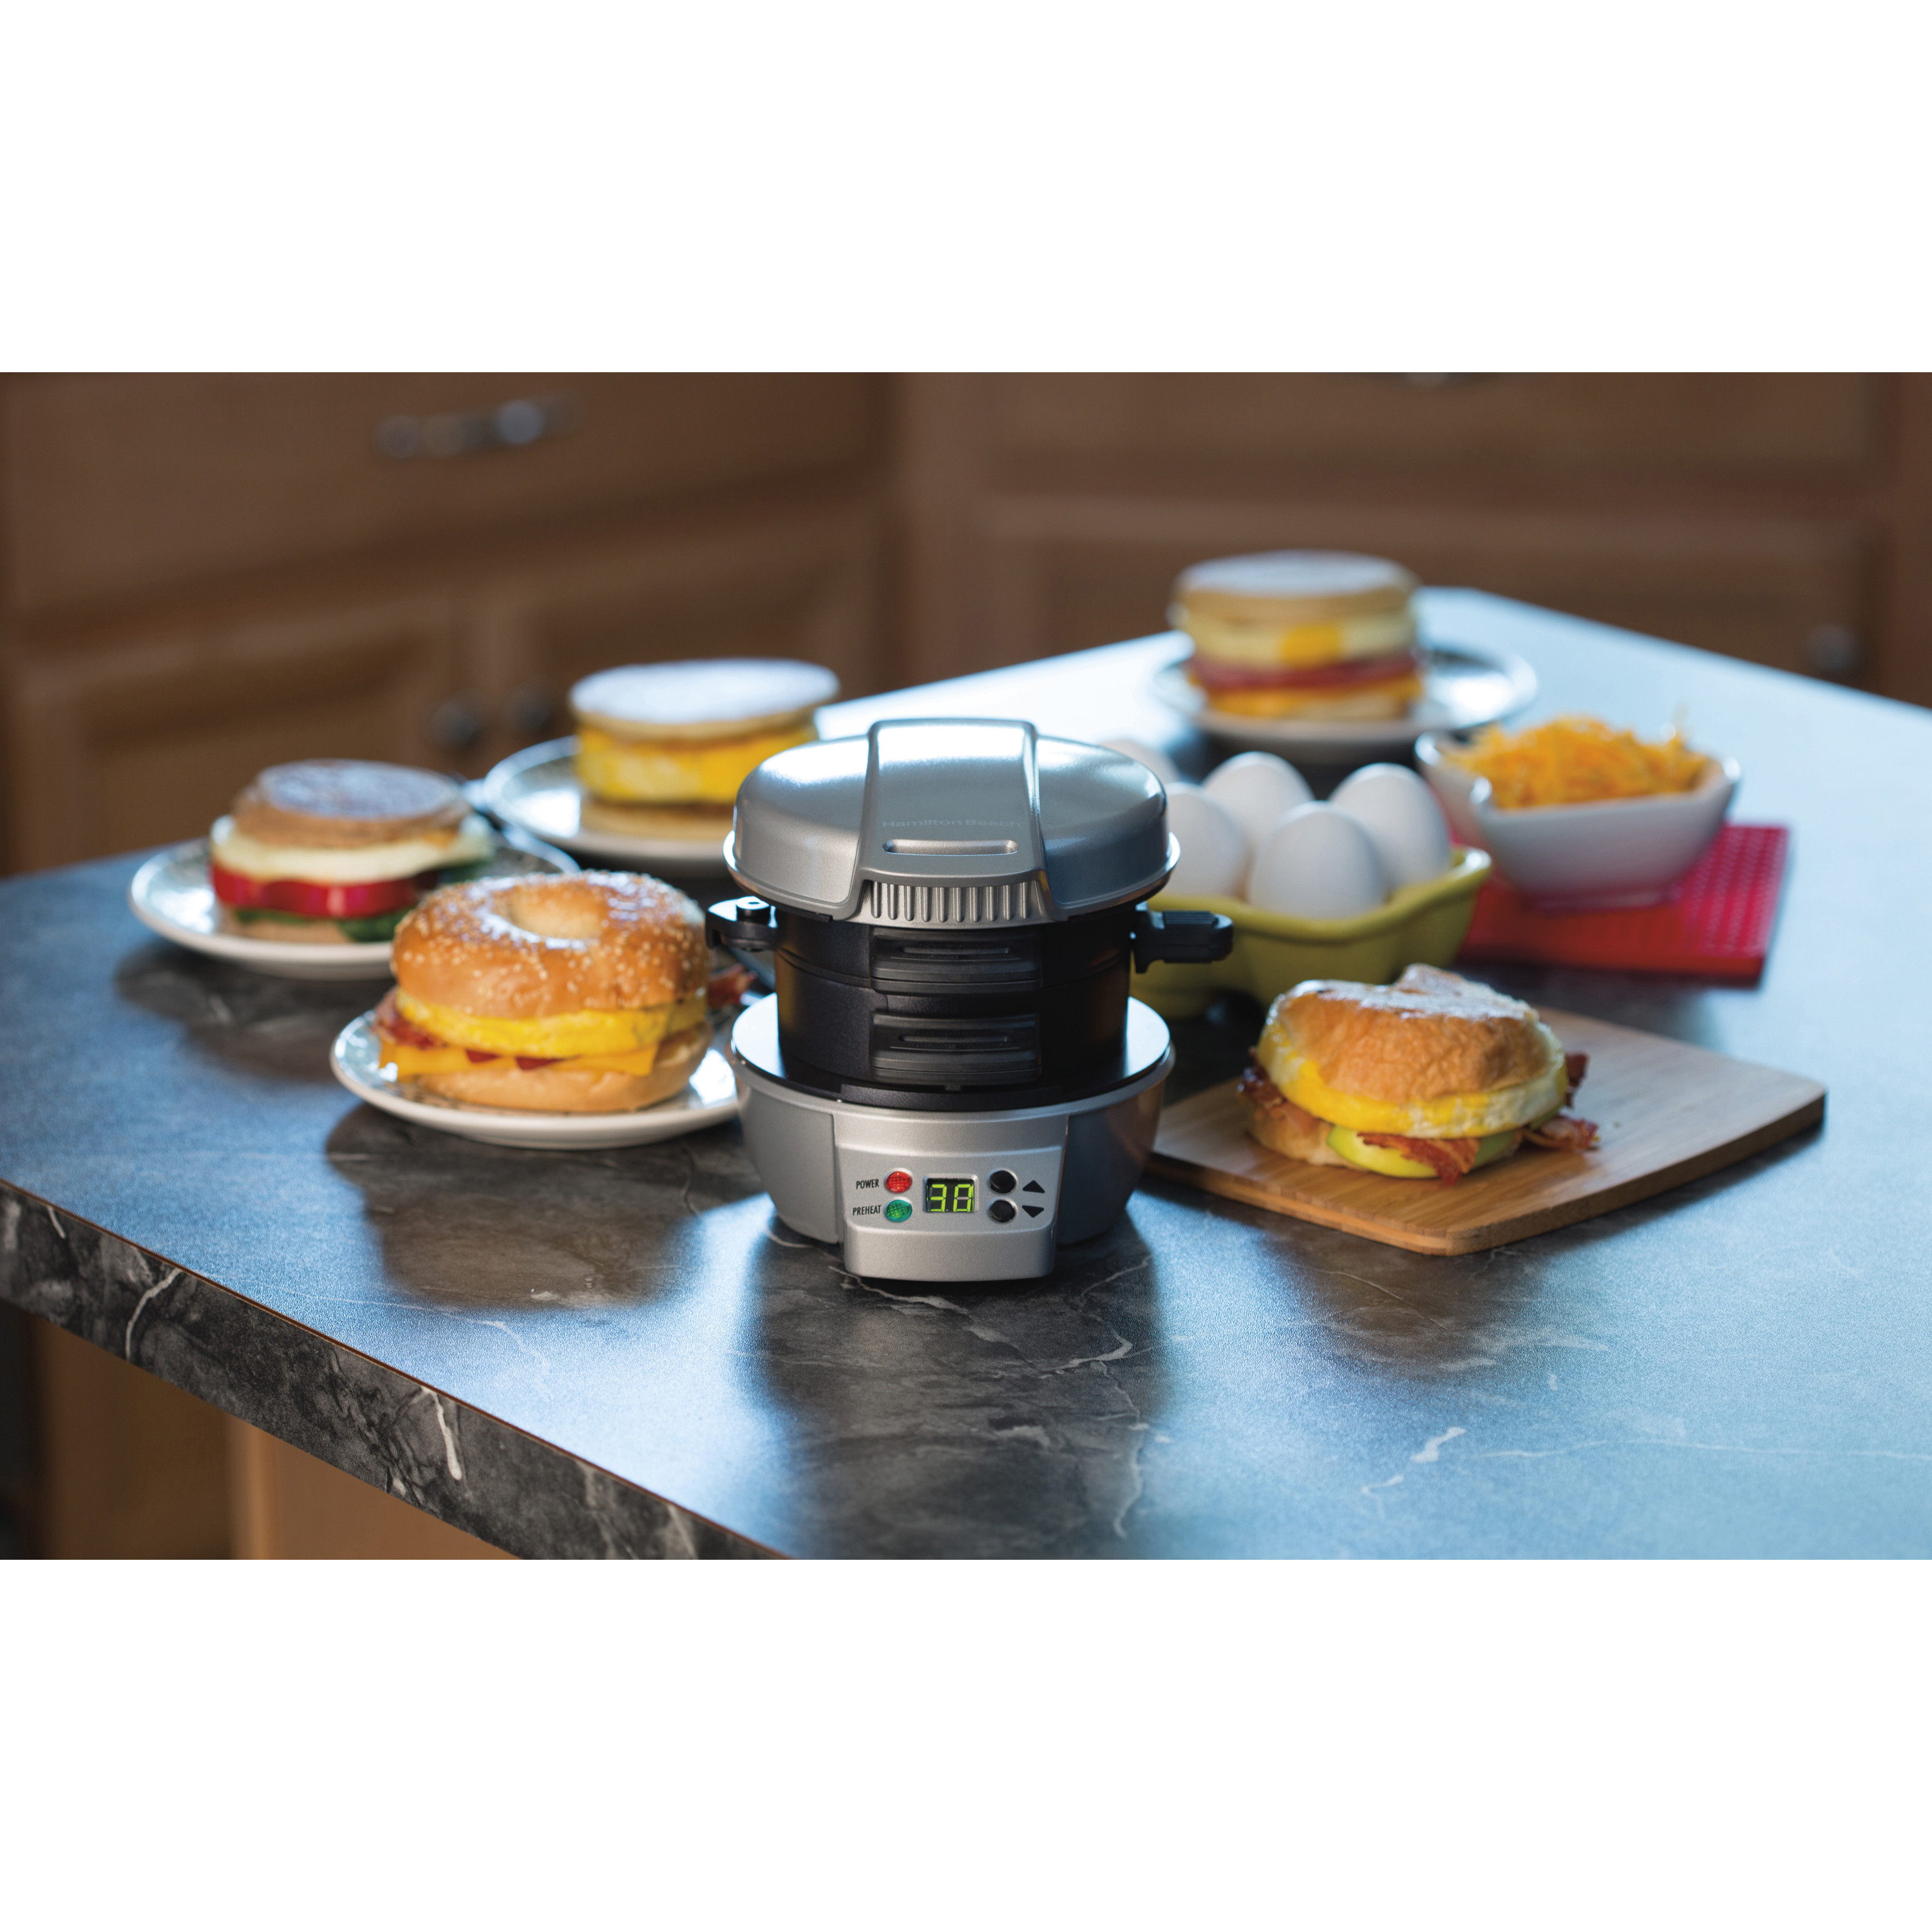 Hamilton Beach Breakfast Sandwich Maker Recipes  Hamilton Beach Breakfast Sandwich Maker & Reviews